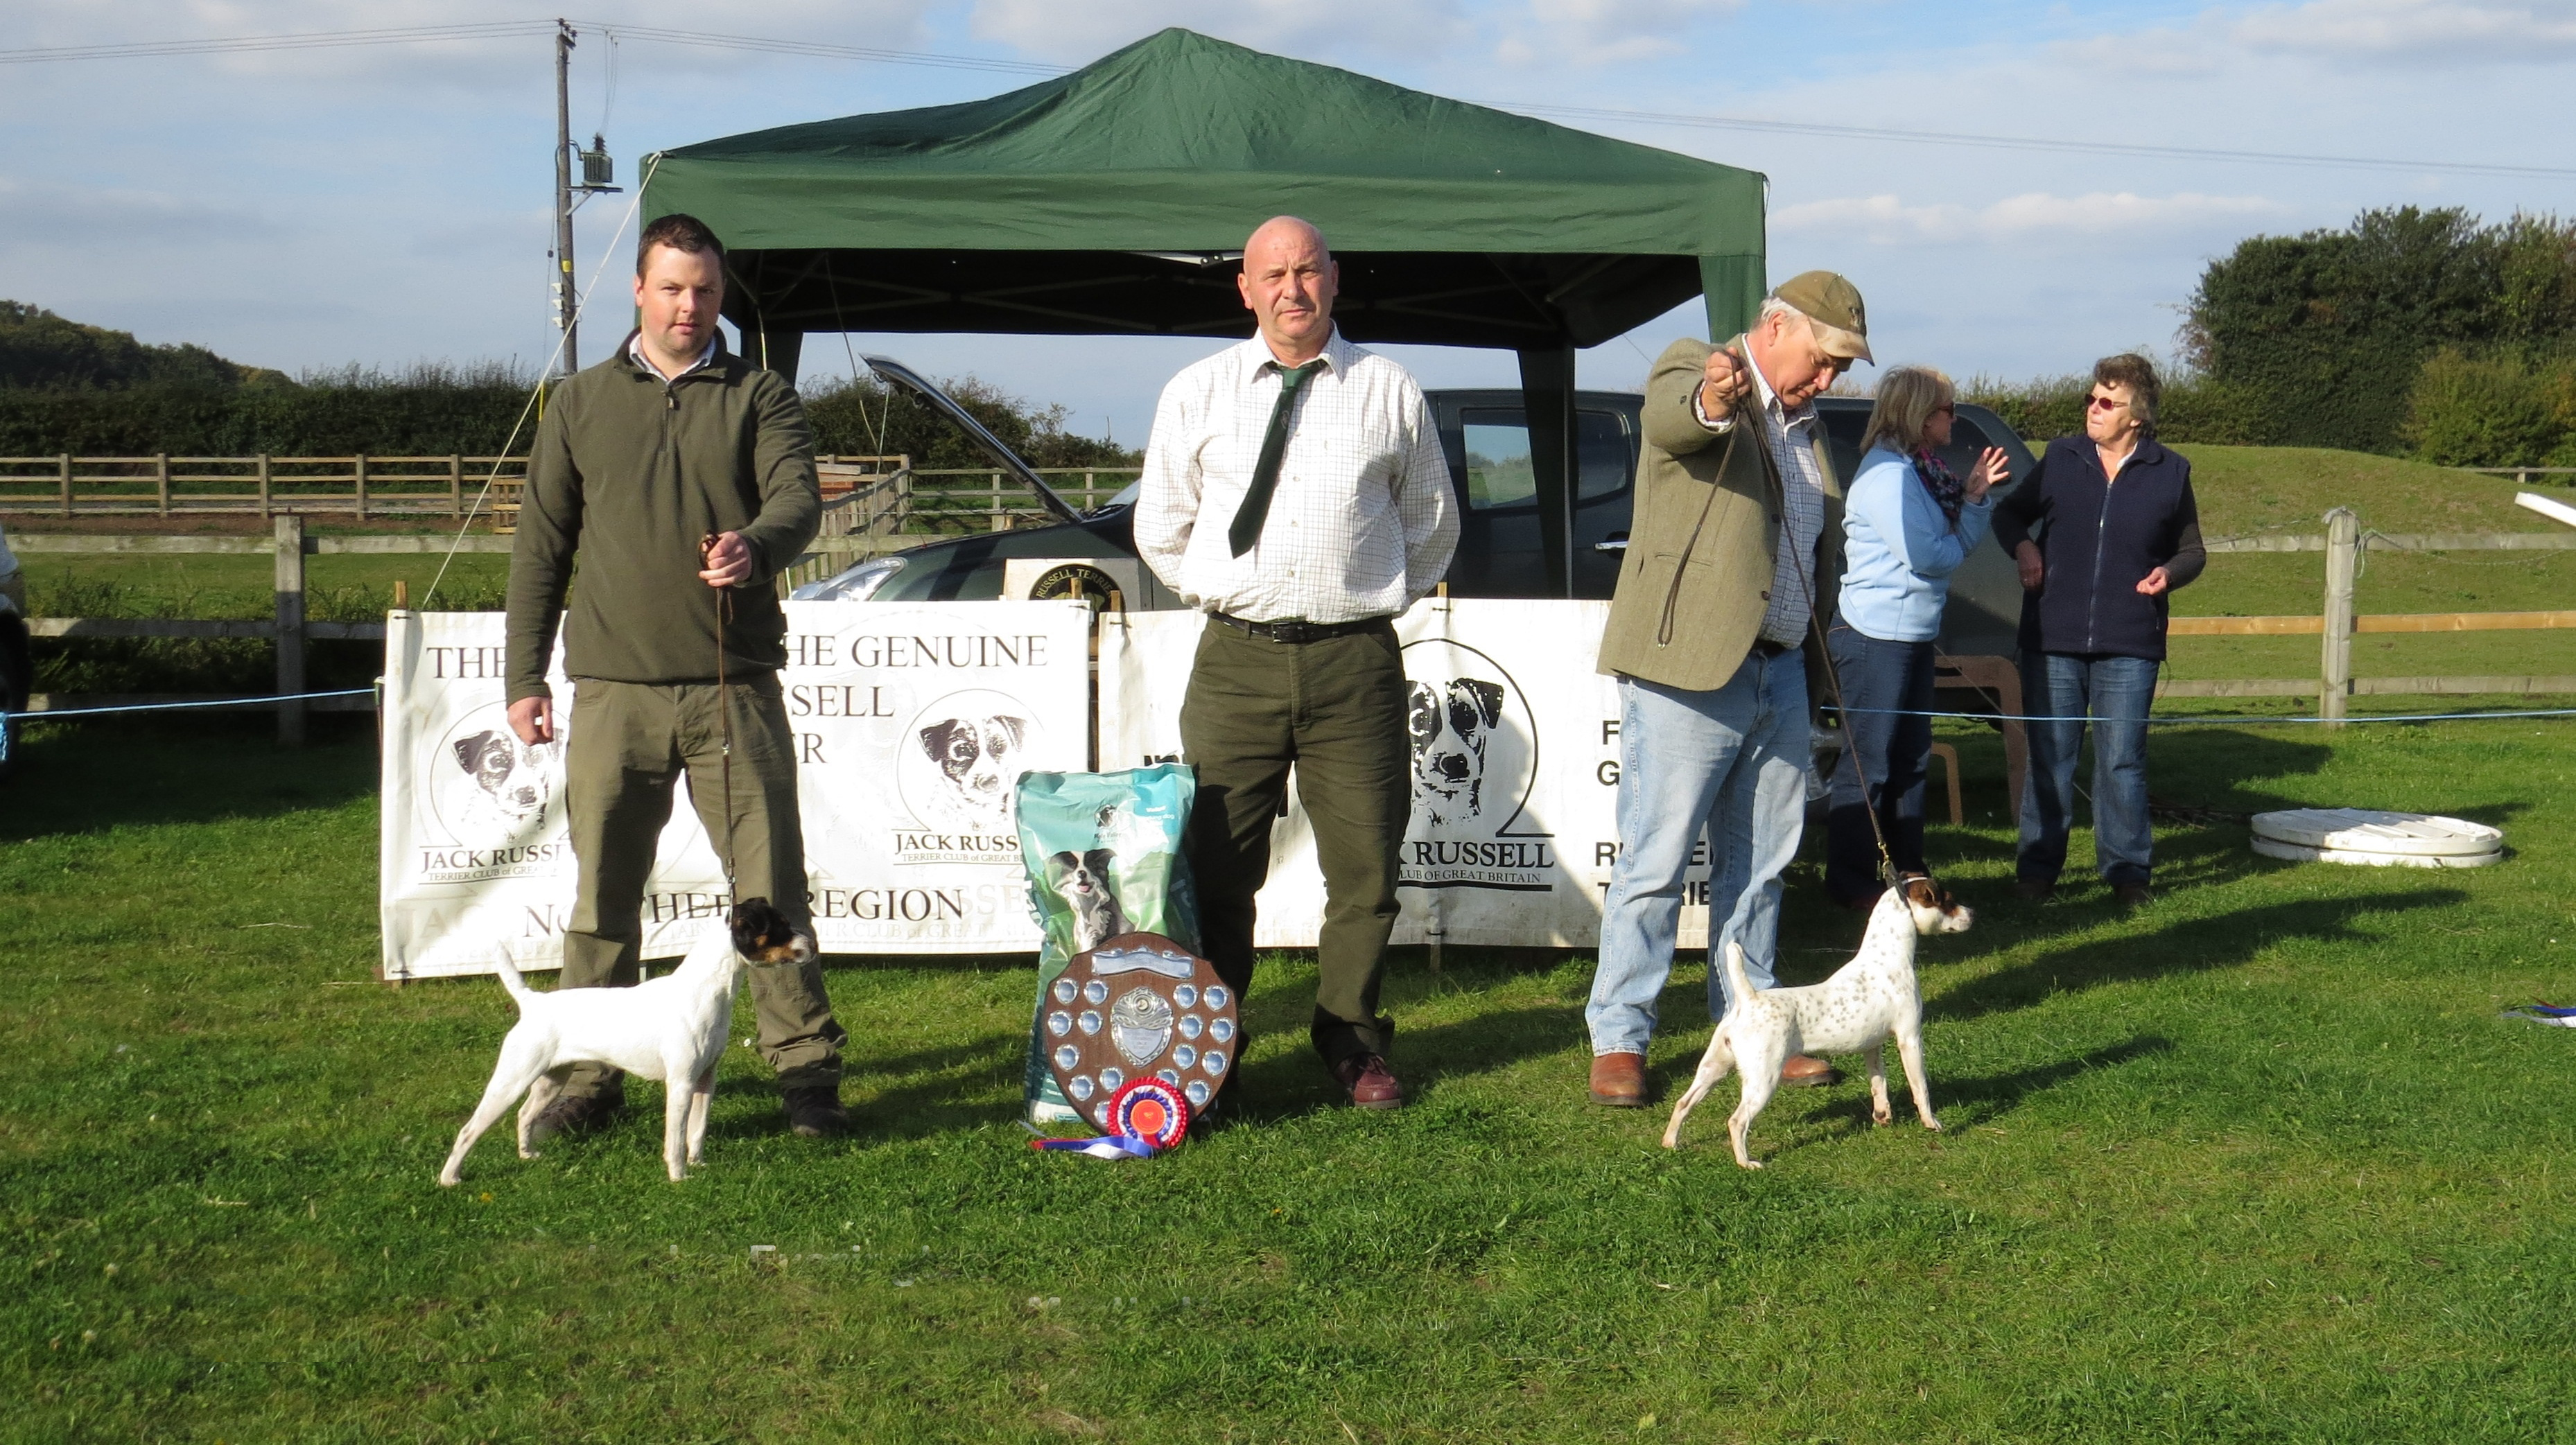 Champion - Dave Maxwell's Fern | Reserve - Martyn Hulme's Friarmoor Ellie of Rushill